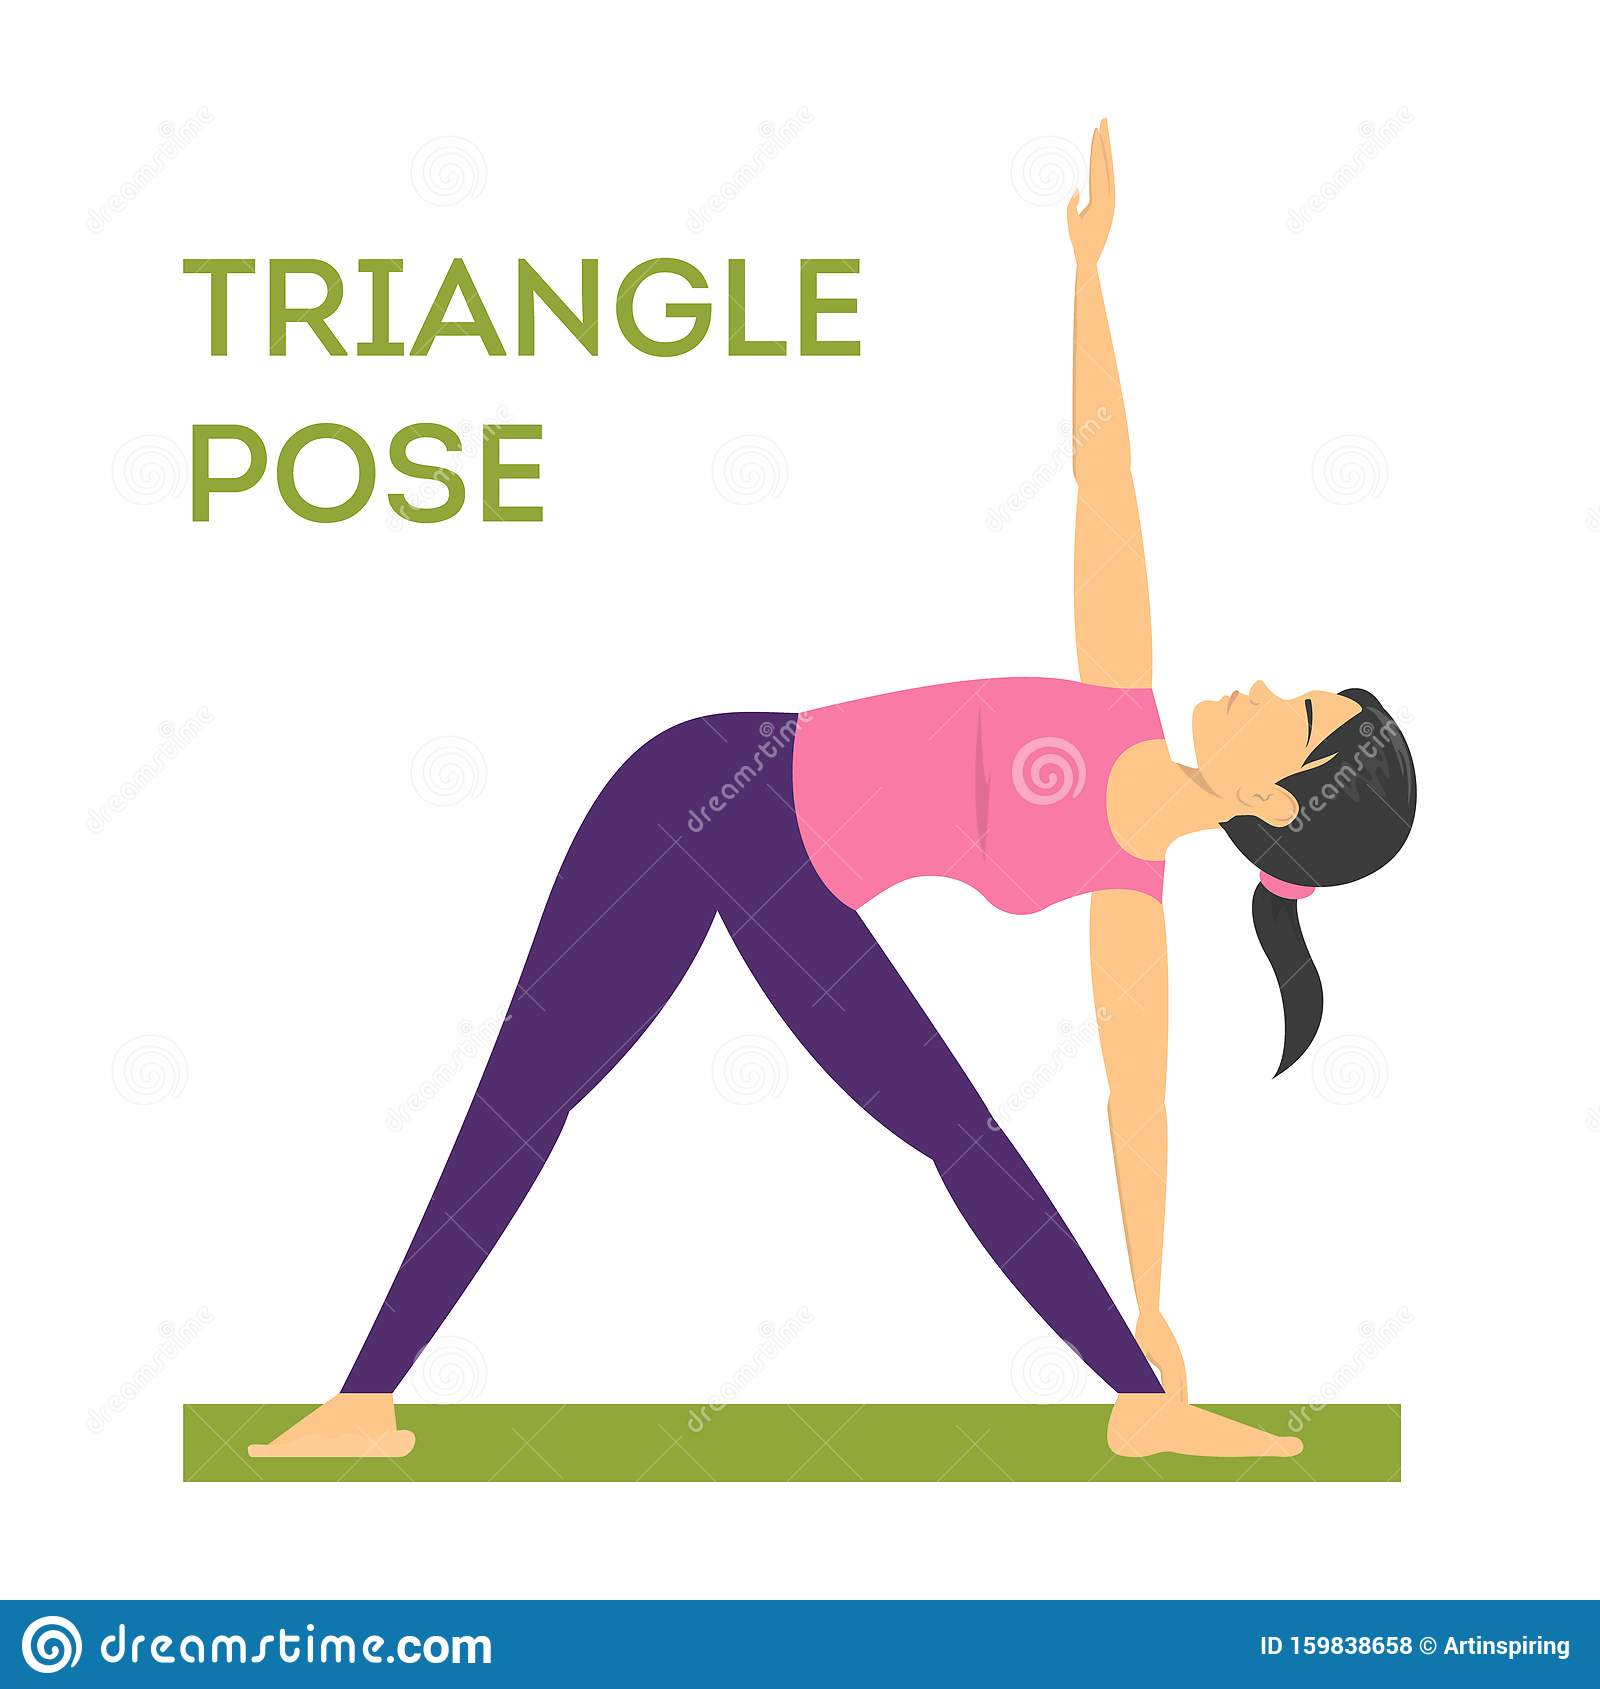 Triangle Pose Exercise